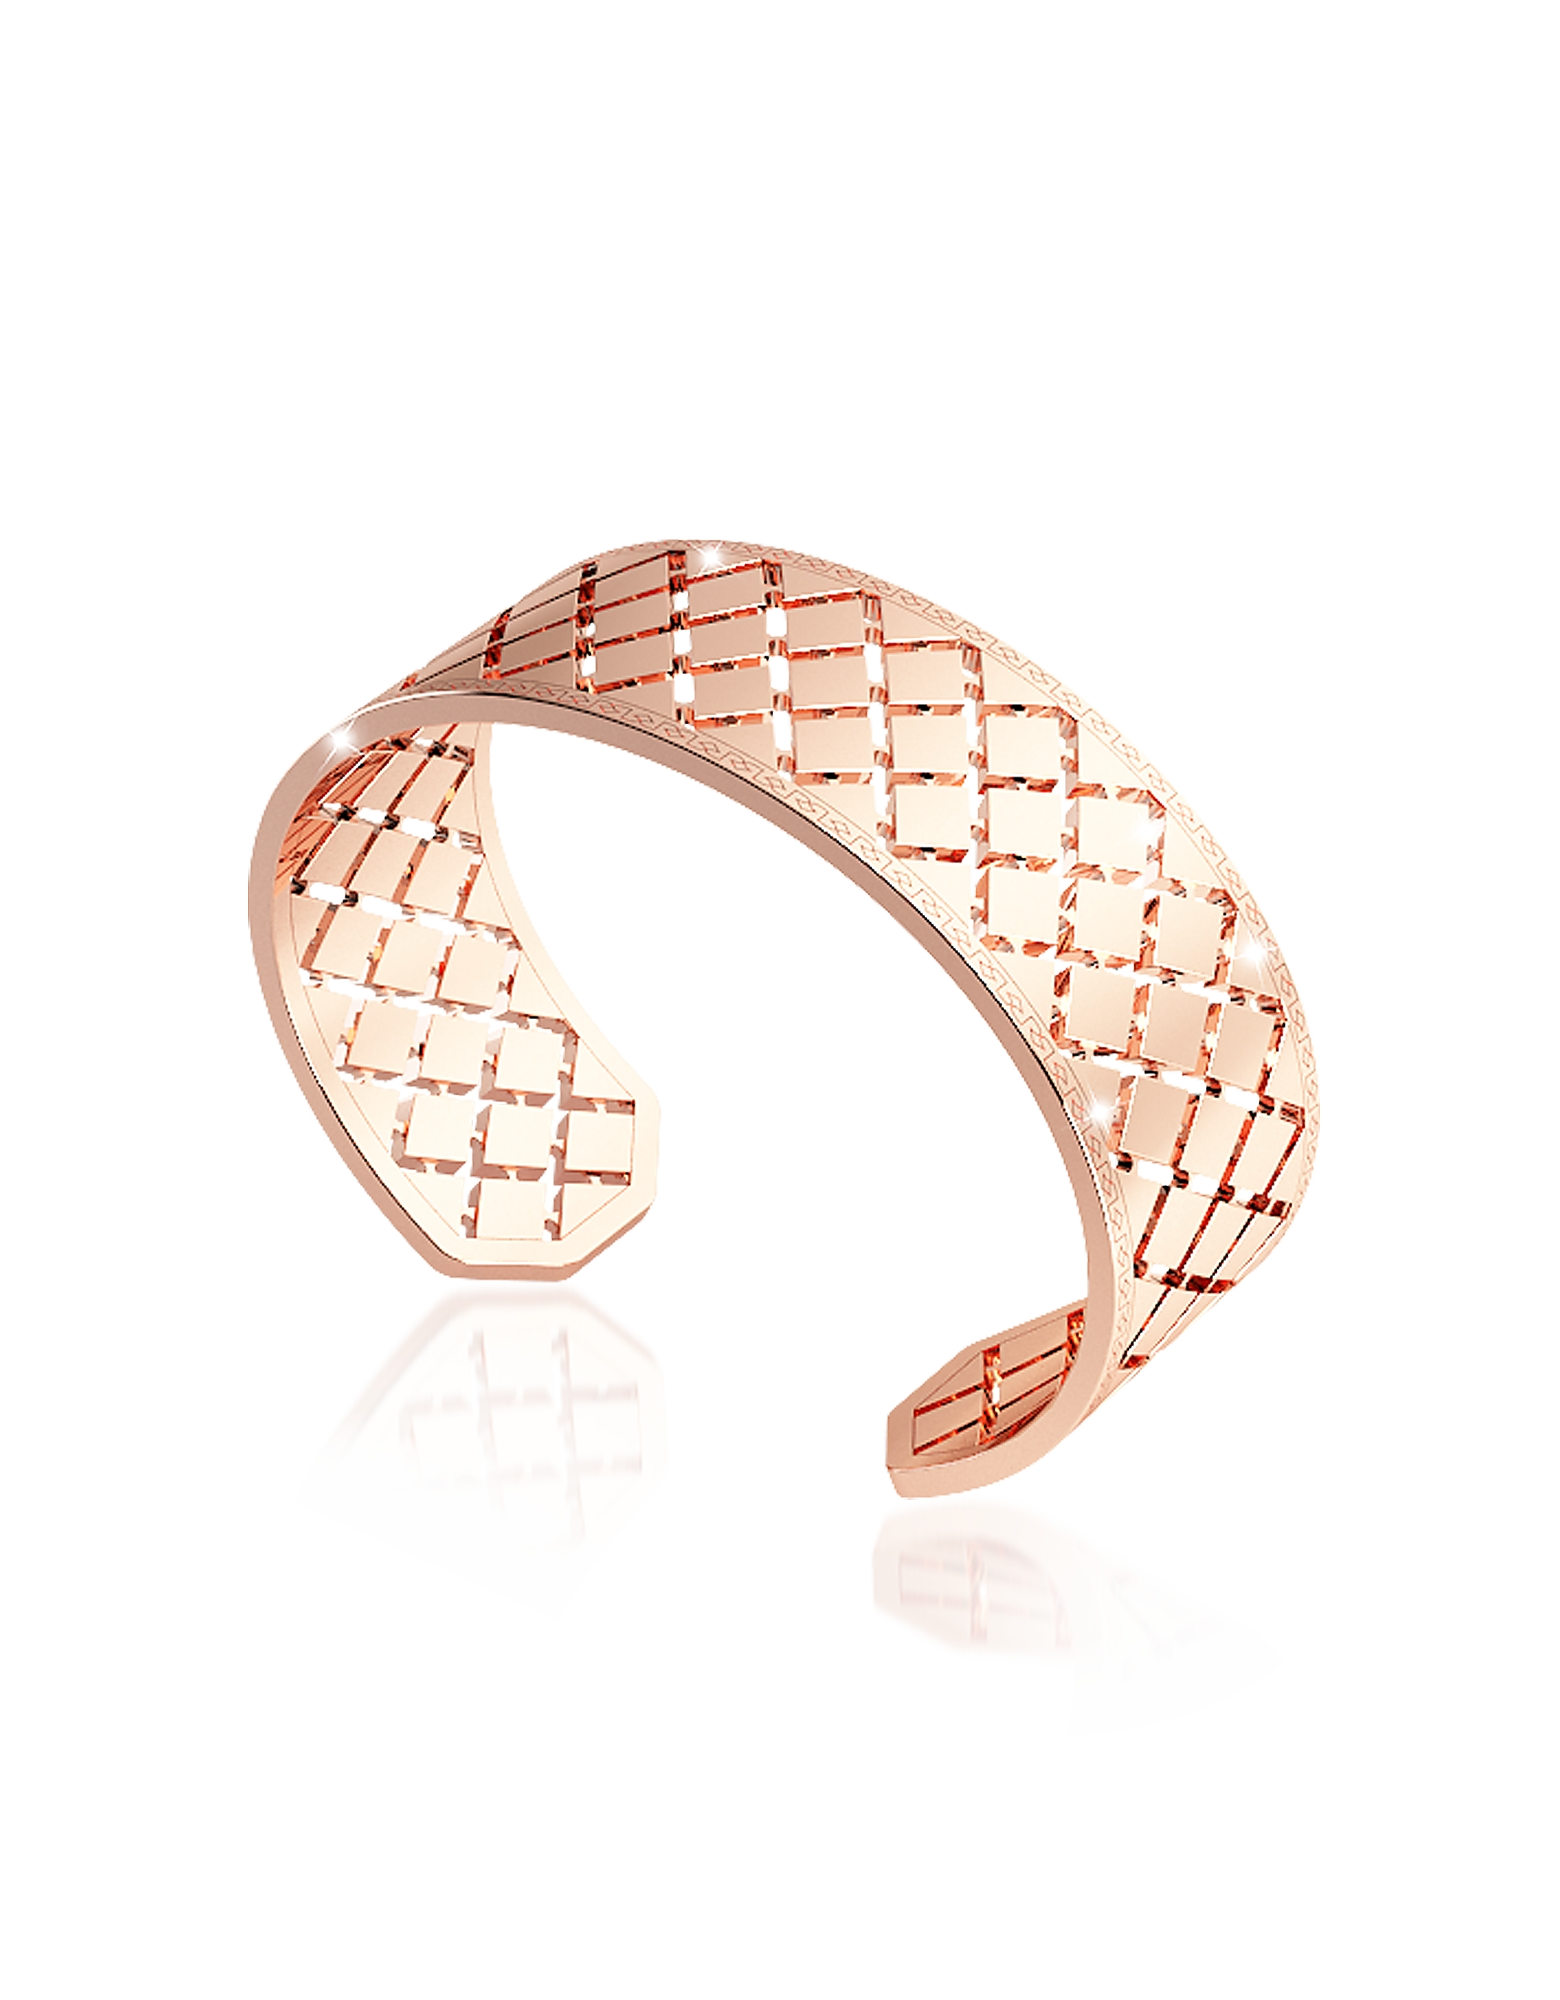 Rebecca Bracelets, Melrose Rose Gold Over Bronze Bangle Bracelet